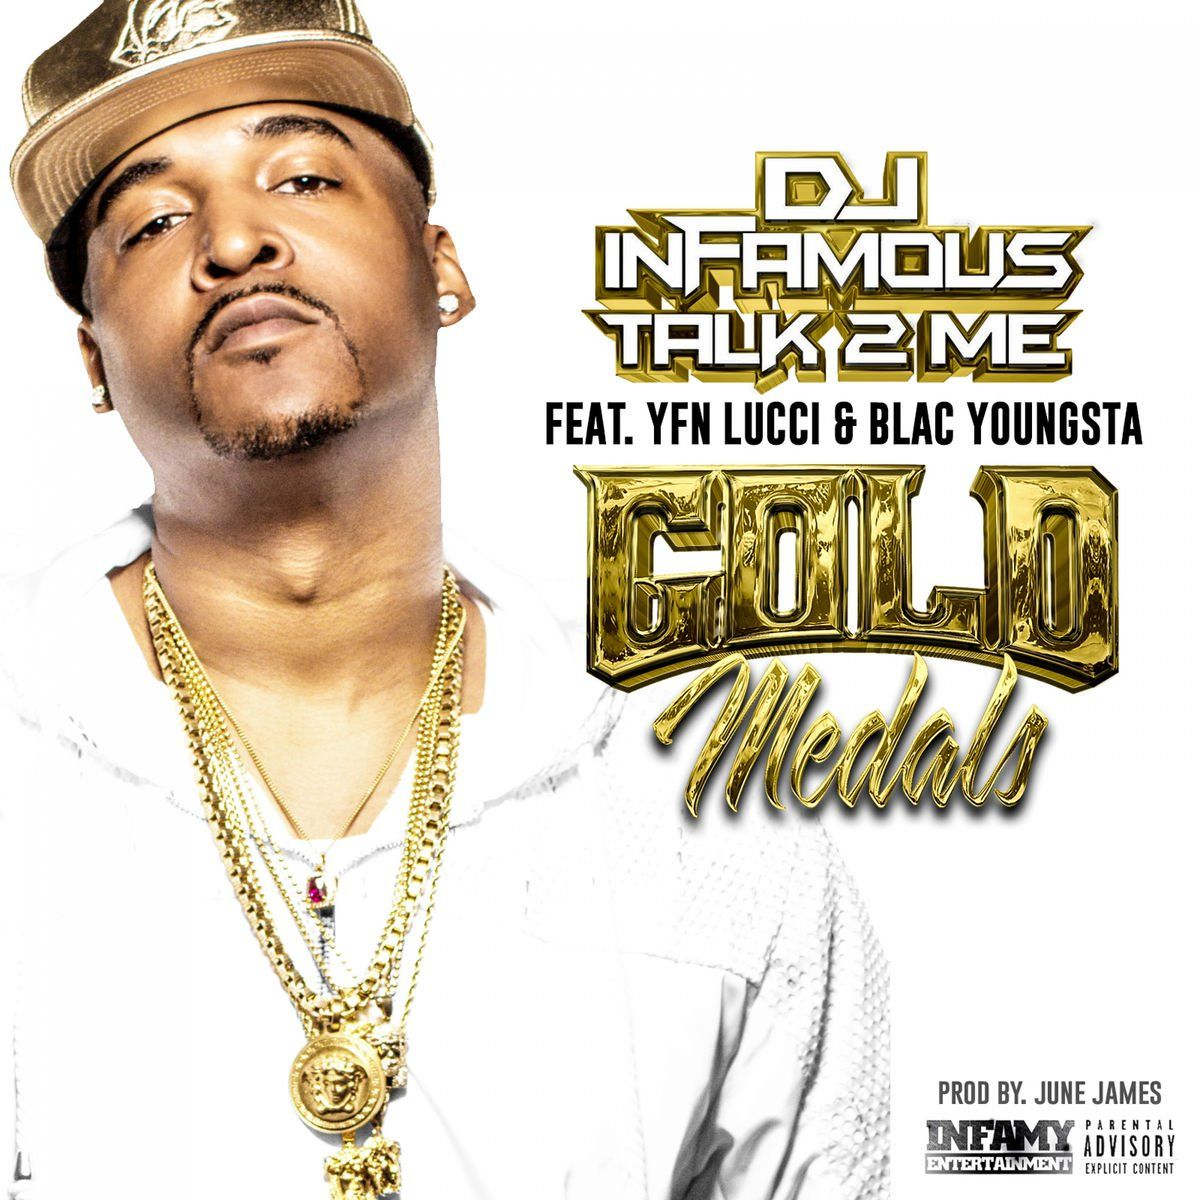 New Music: DJ Infamous ft  YFN Lucci & Blac Youngsta - Gold